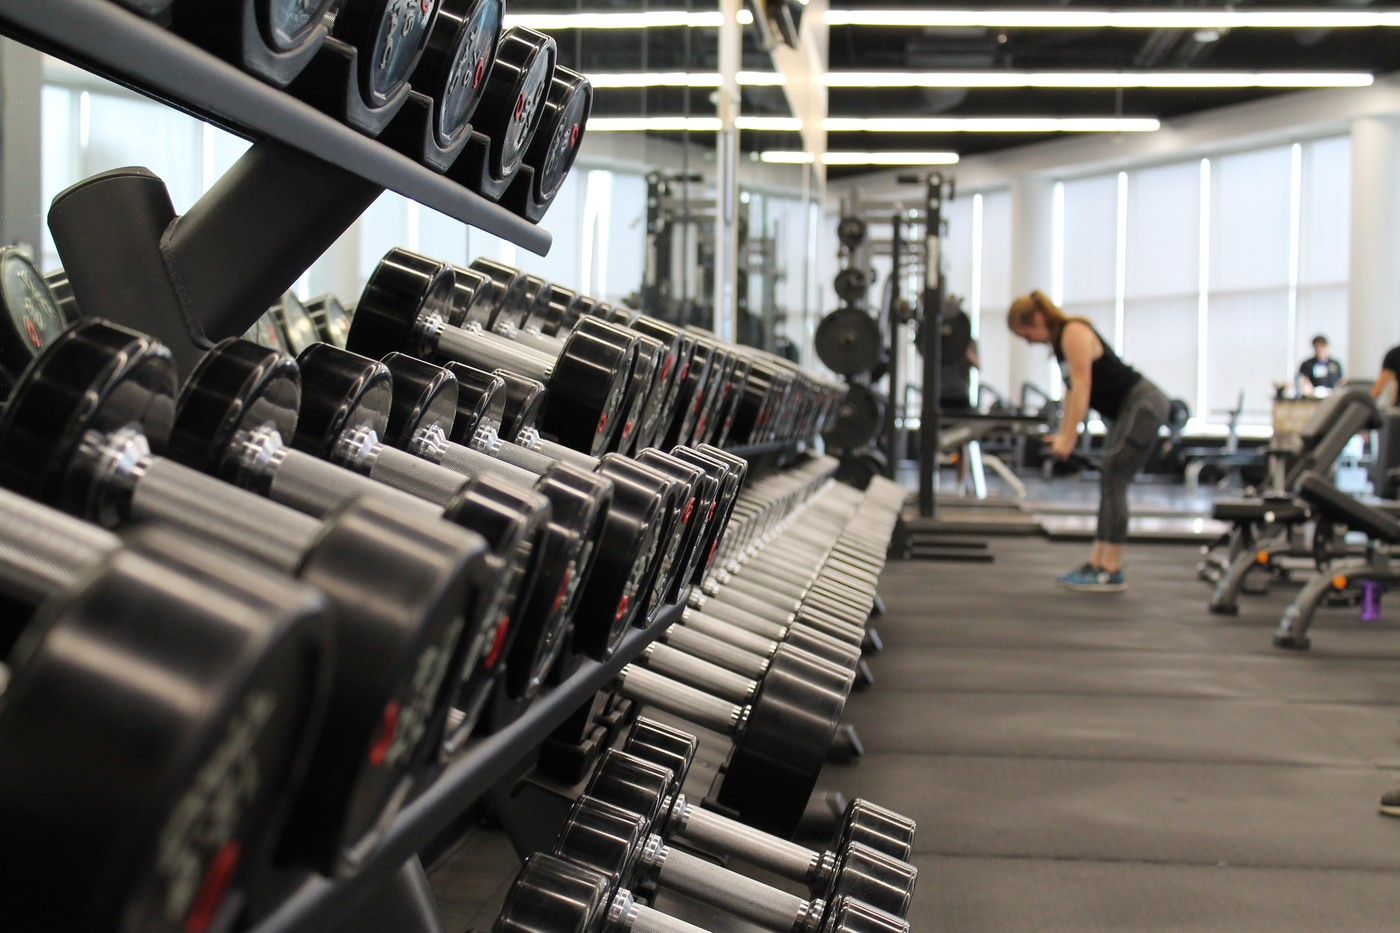 7 Ways to Motivate Your Gym Members Based on Science